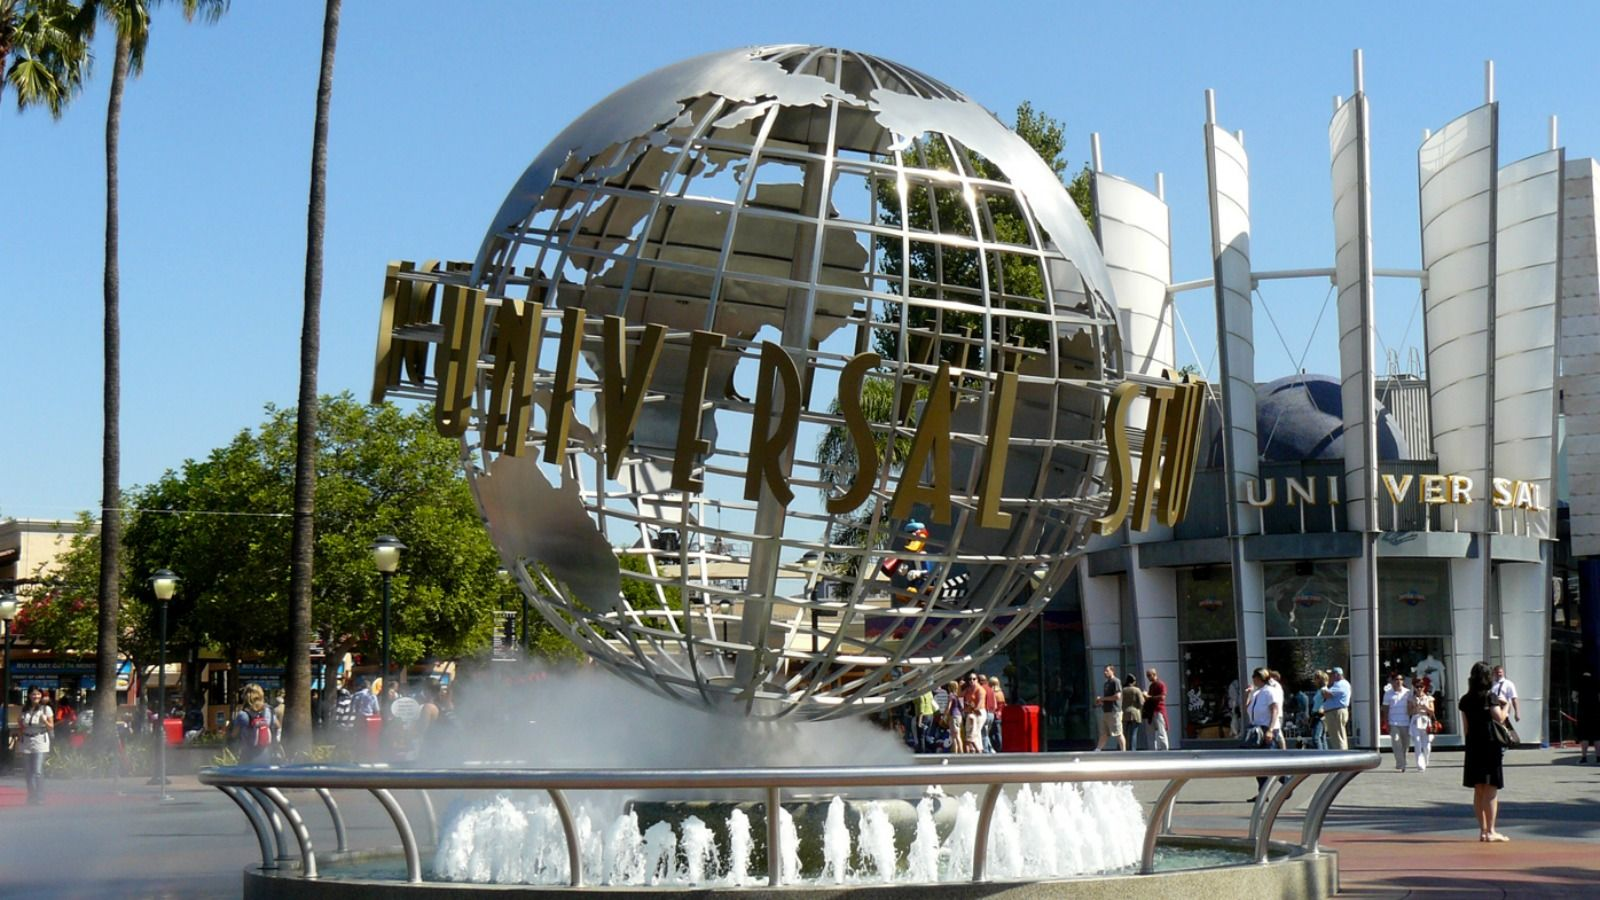 Things to do in Southern California - Universal Studios